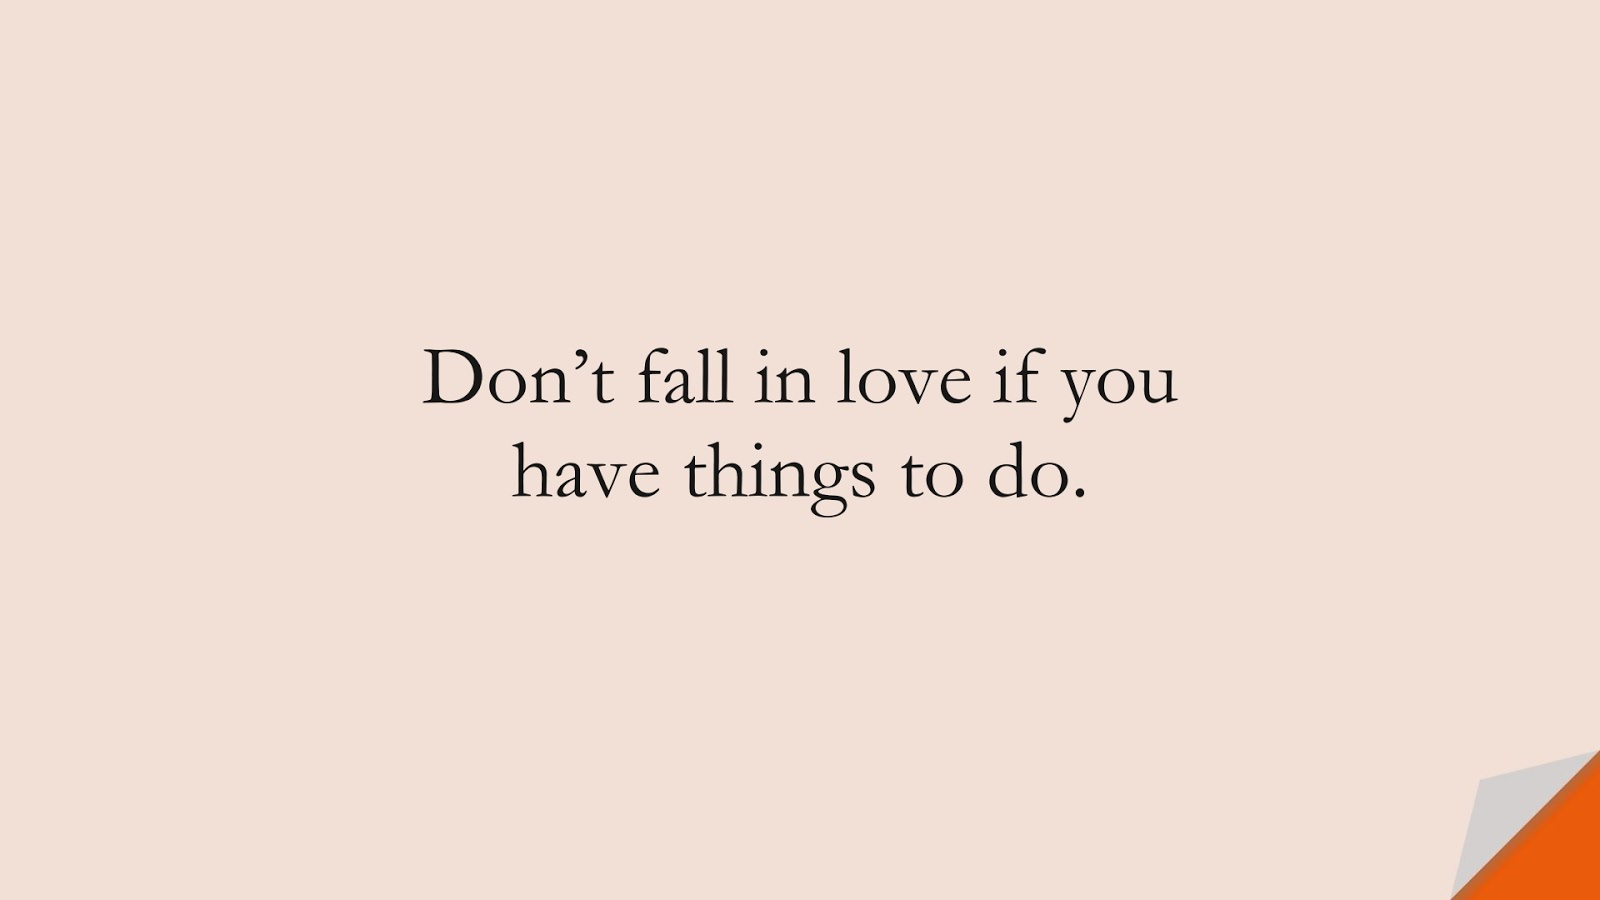 Don't fall in love if you have things to do.FALSE